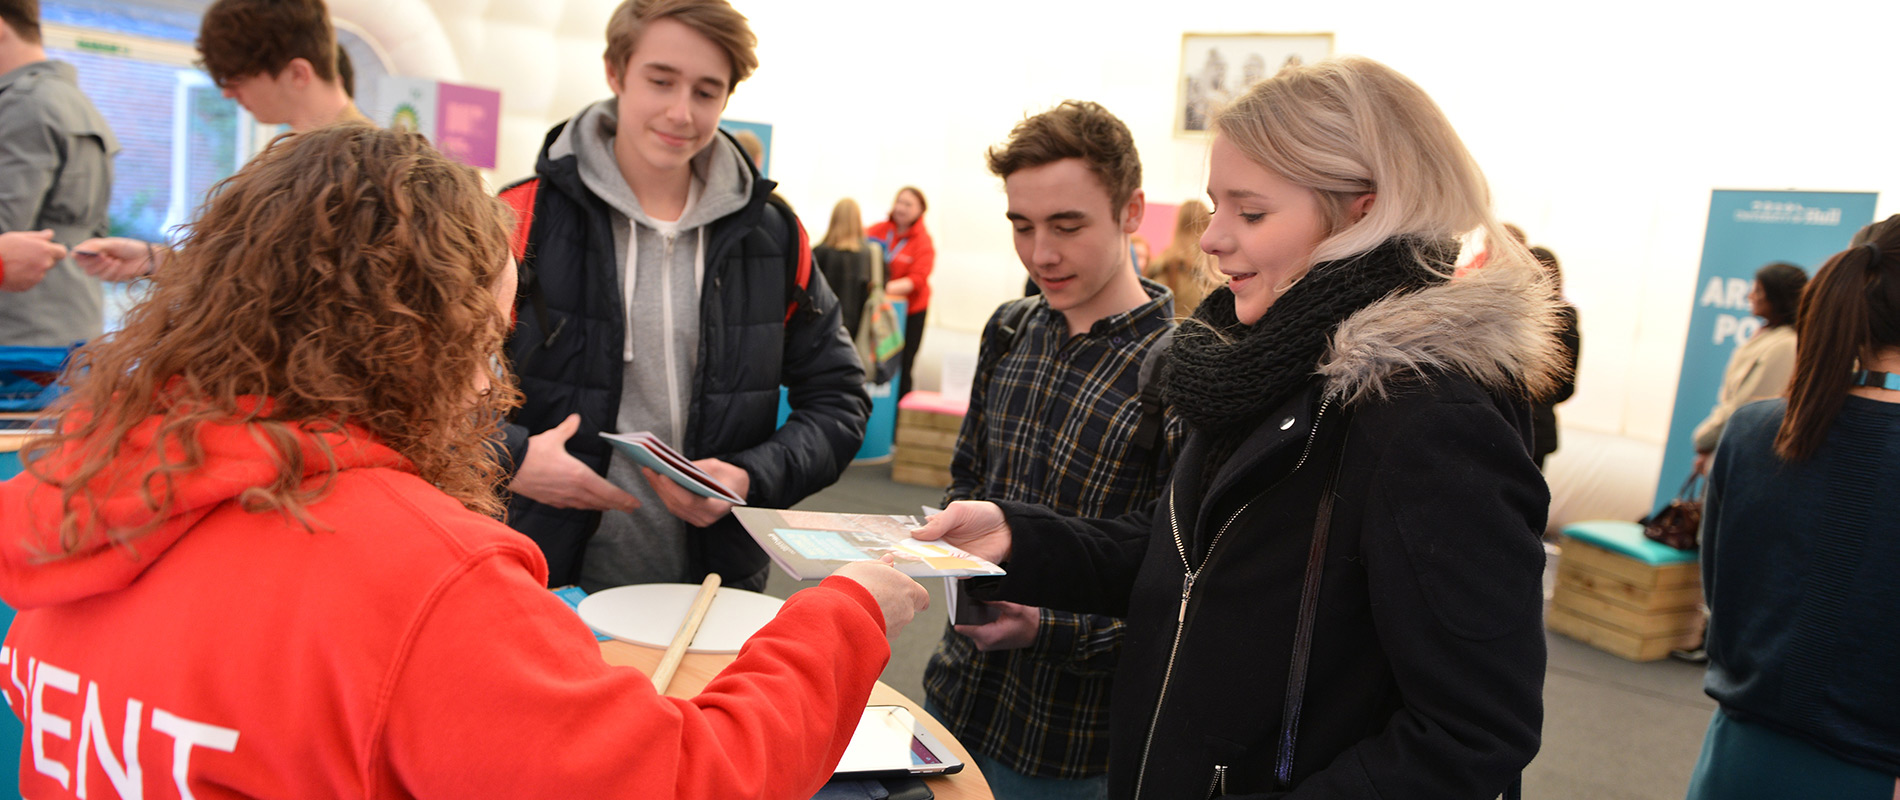 Prospective students chatting to University staff at an Open Day